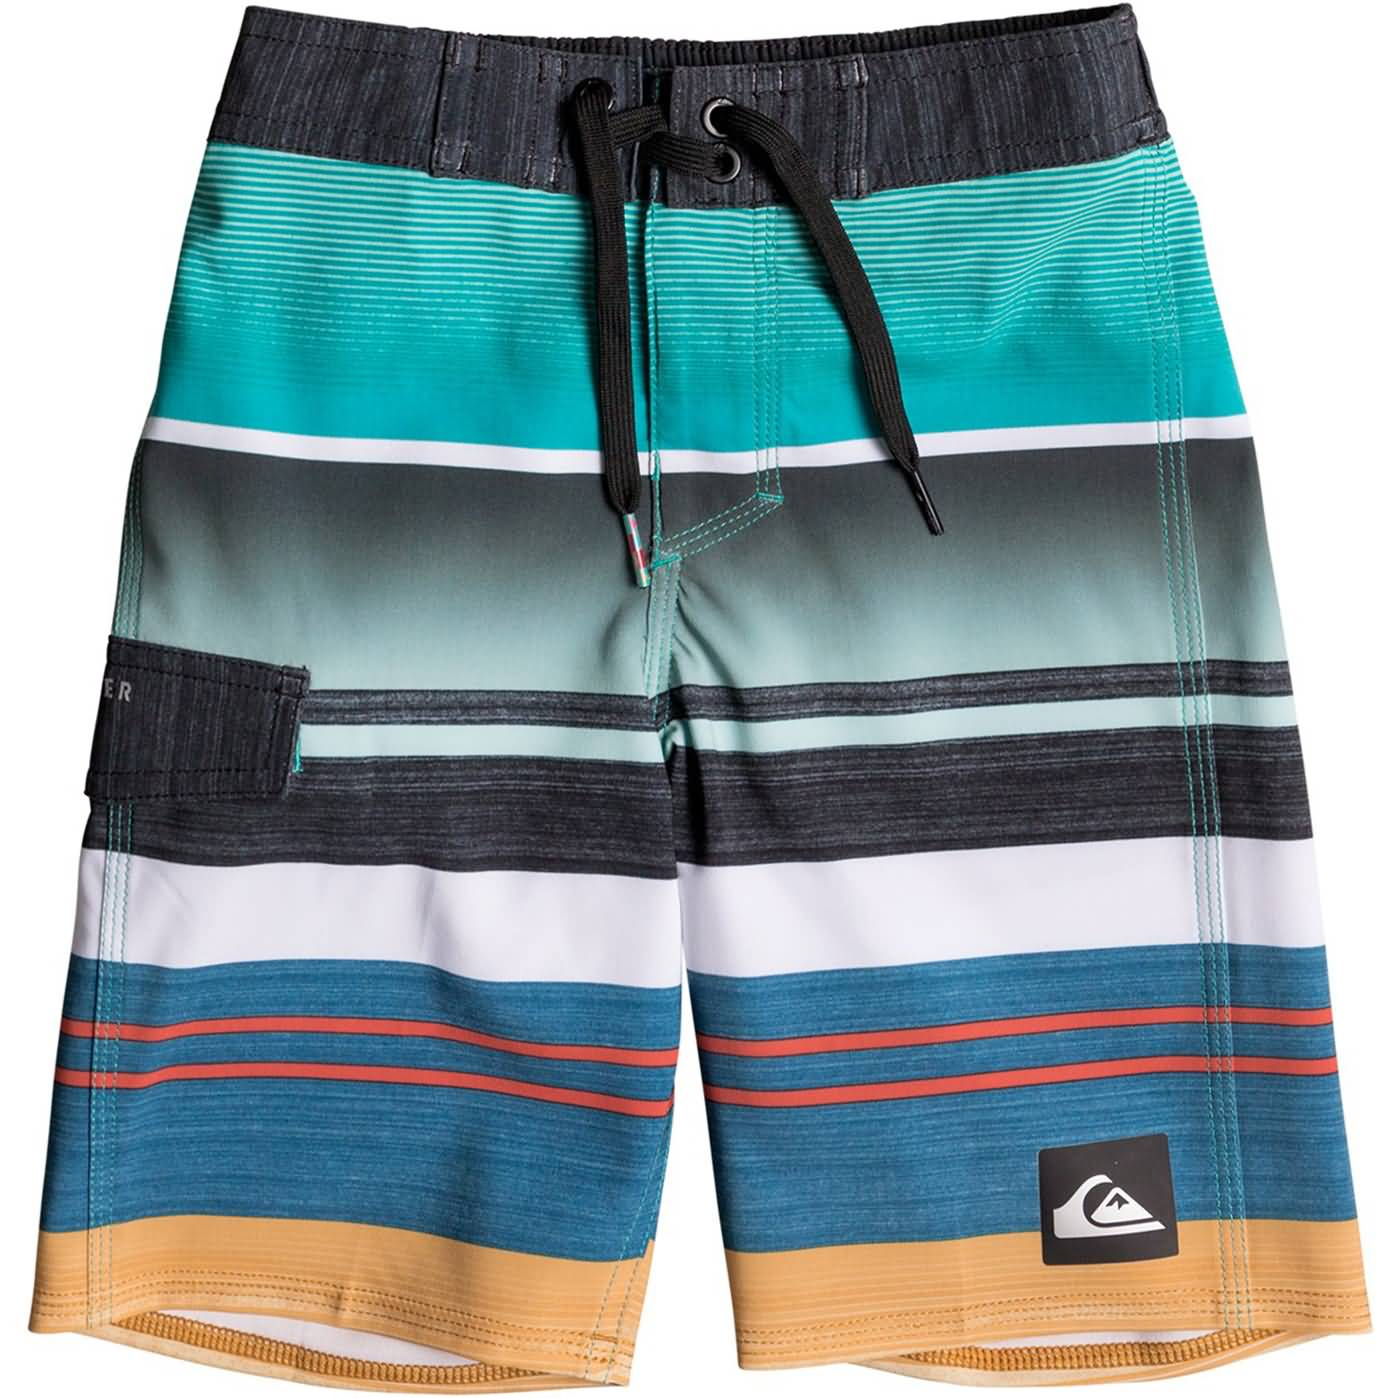 Boys Fall Beachwear Collection Quiksilver 2017 Kids Boardshorts Surf clK1JTF